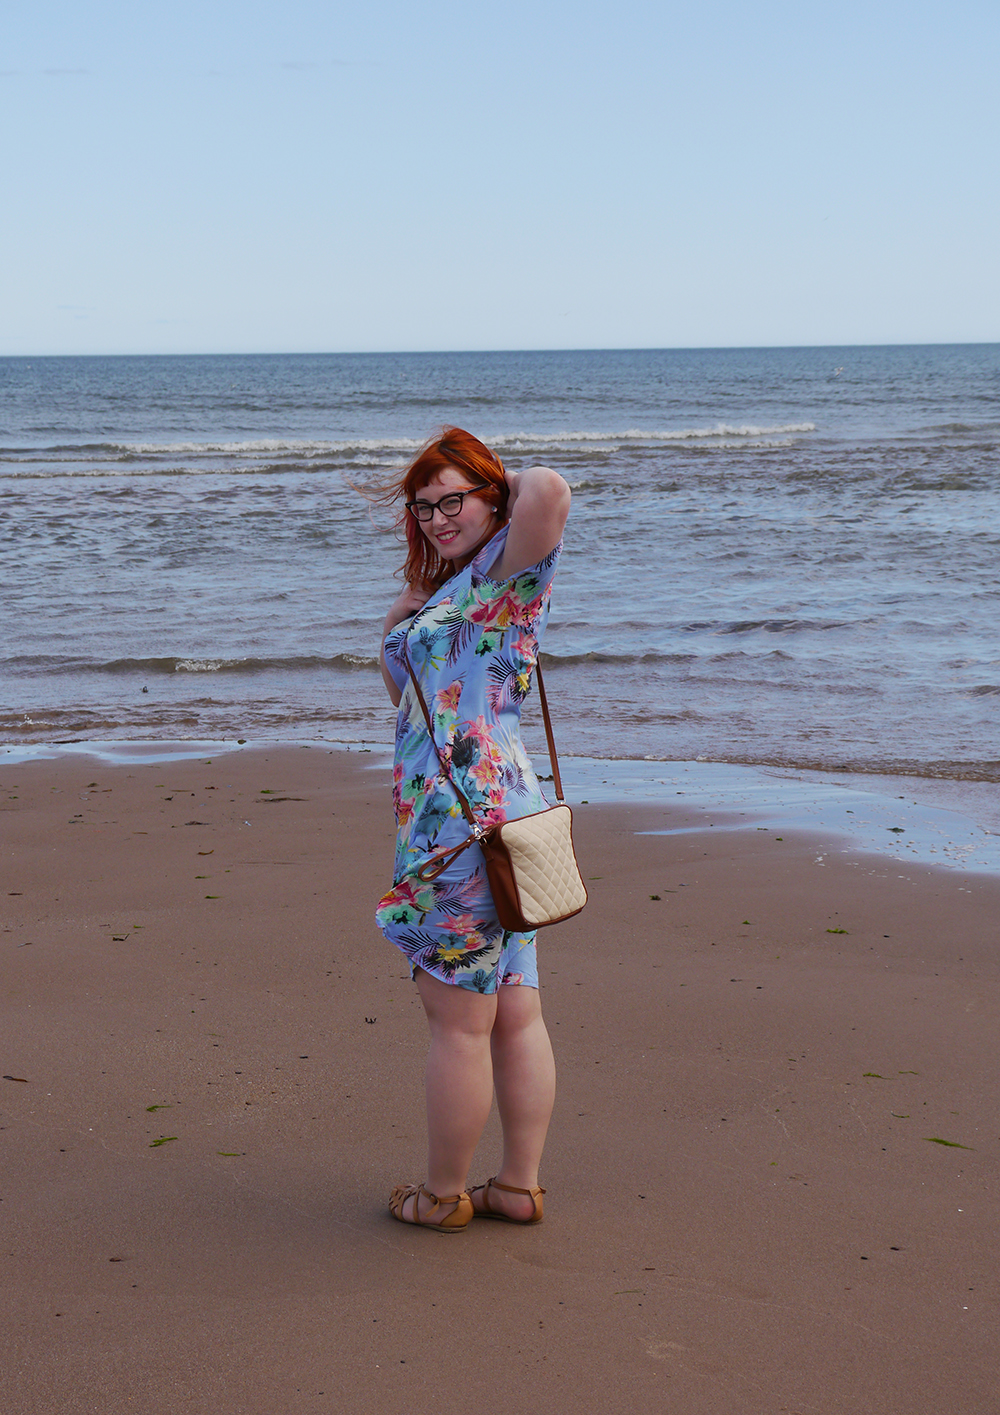 summer style, tropical style, beach style, DIY dress, dressmaking, Styled by Helen: Tropical, red head, ginger, Topshop sandals, pink blazer, Tom Pigeon earrings, The Whitepepper bread bag